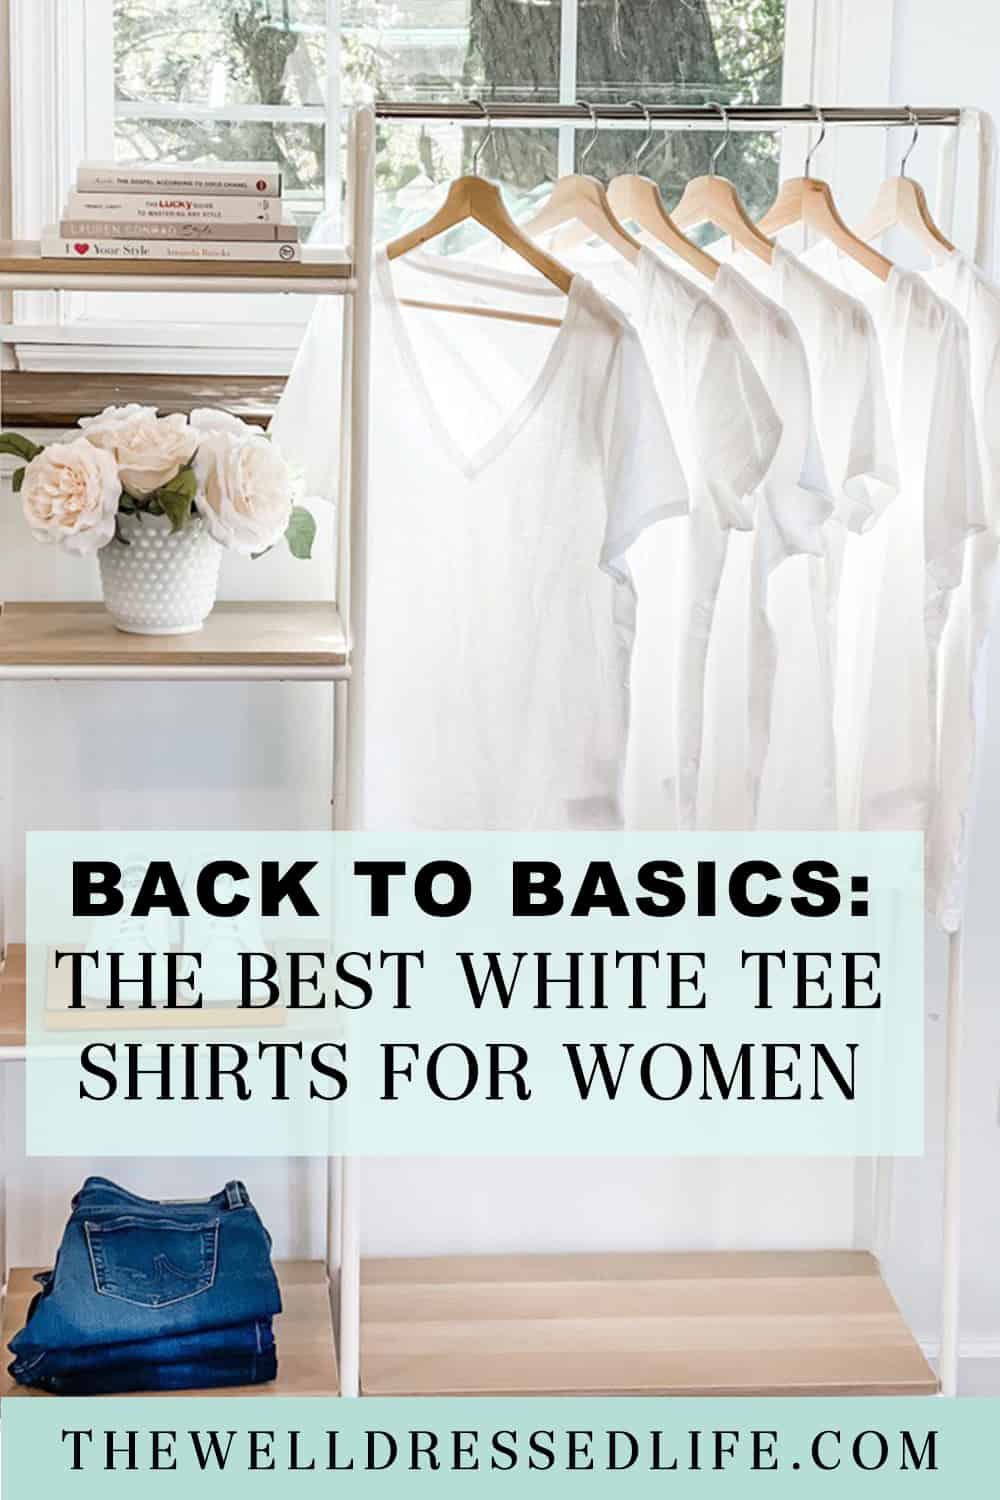 The Best White Tee Shirts for Women